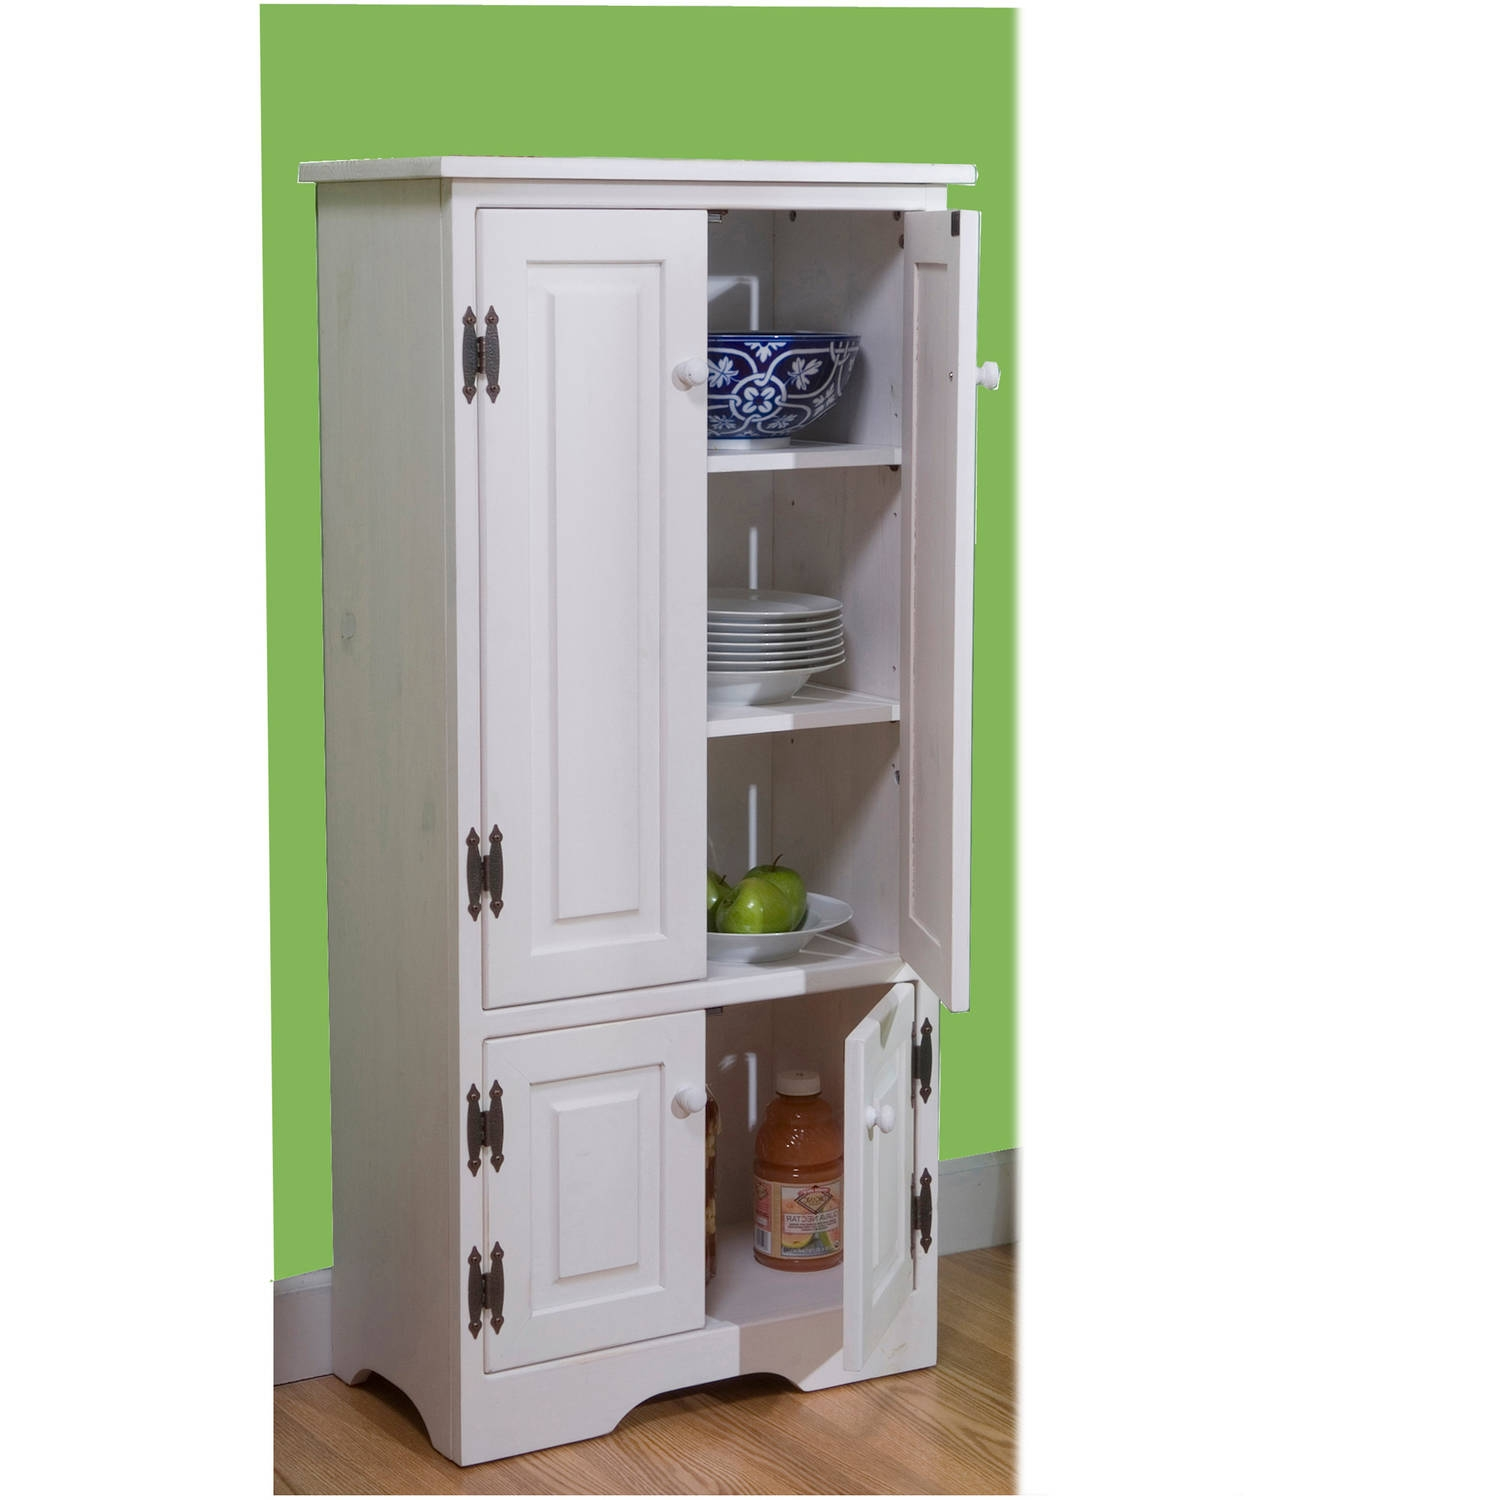 Tall Storage Pantry Cabinet